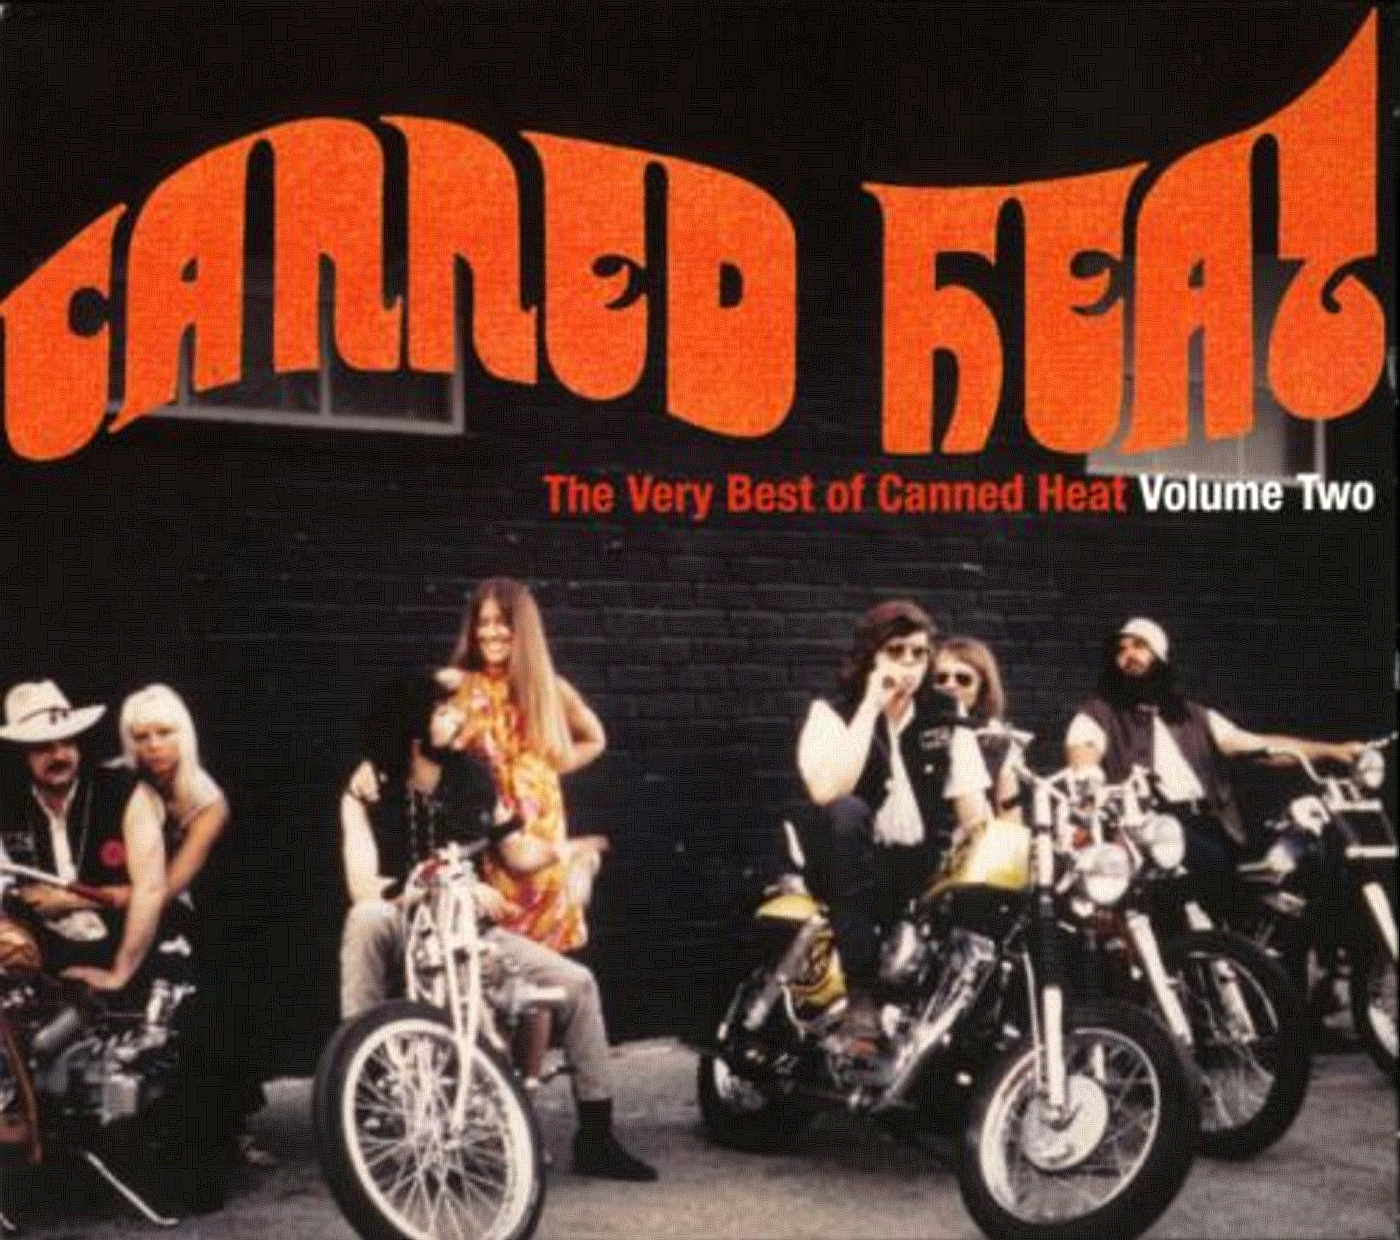 Canned Heat - The Very Best Of Canned Heat Volume Two [Original Recording Remastered] (2006)